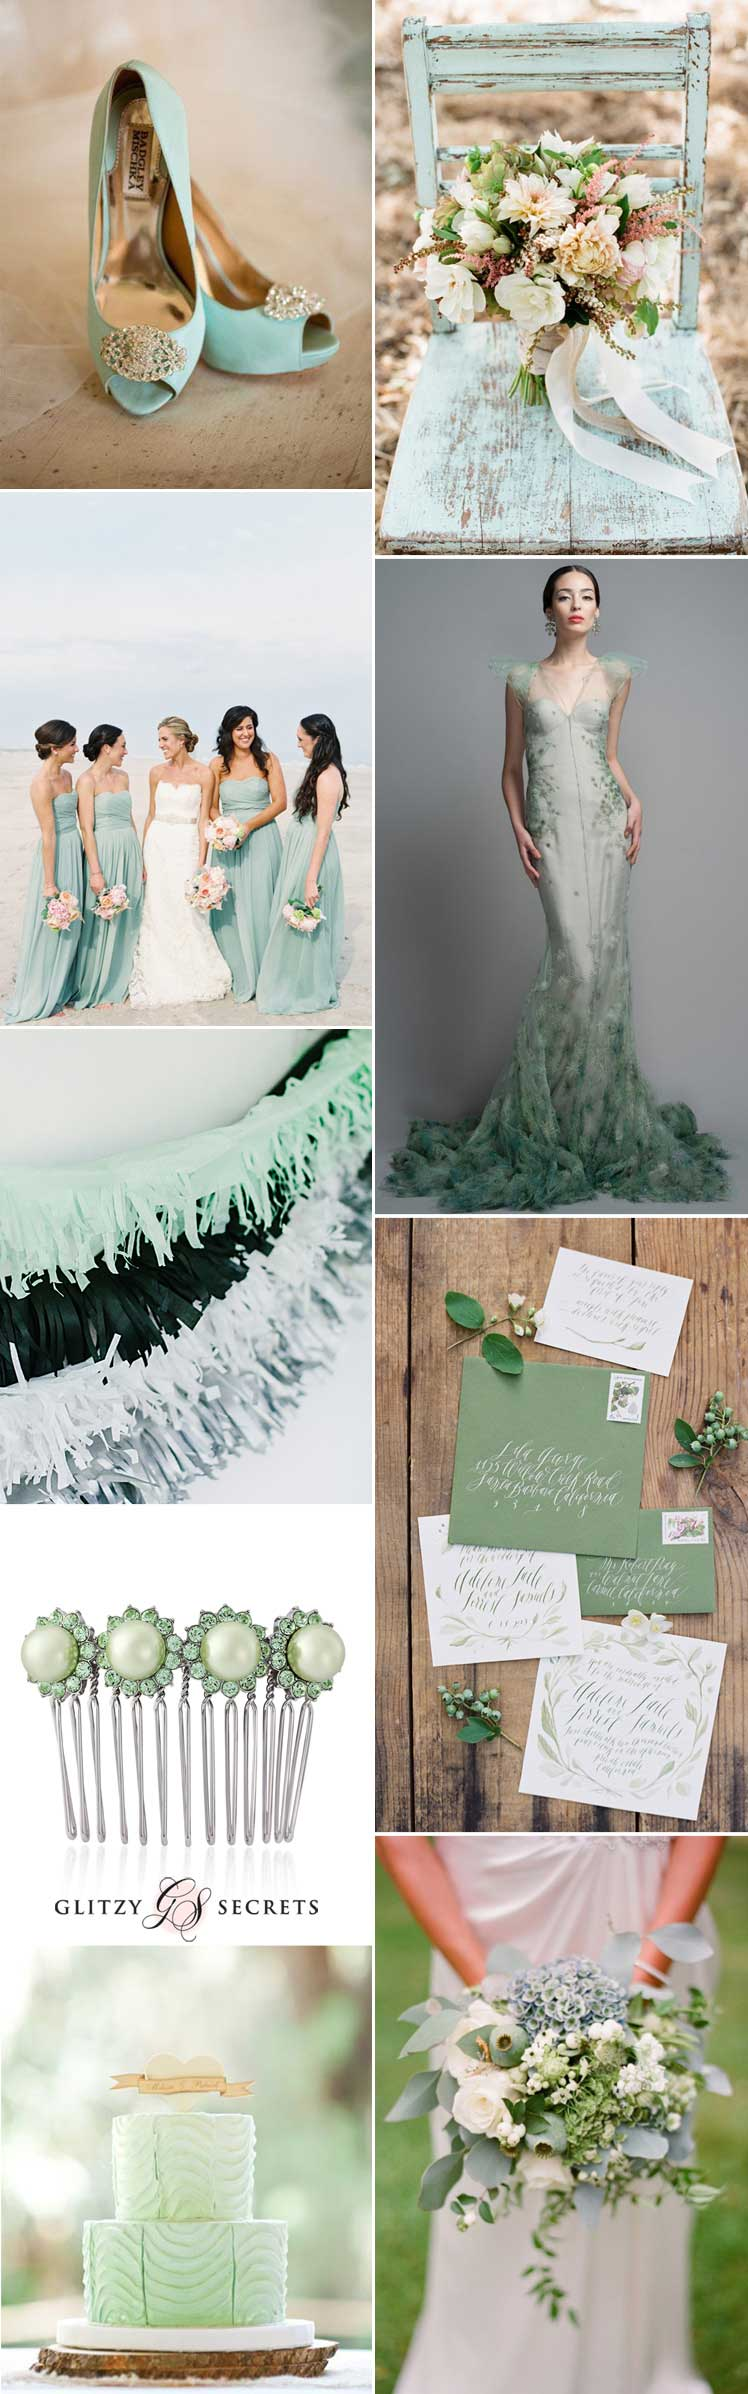 seafoam wedding ideas for a beautiful theme